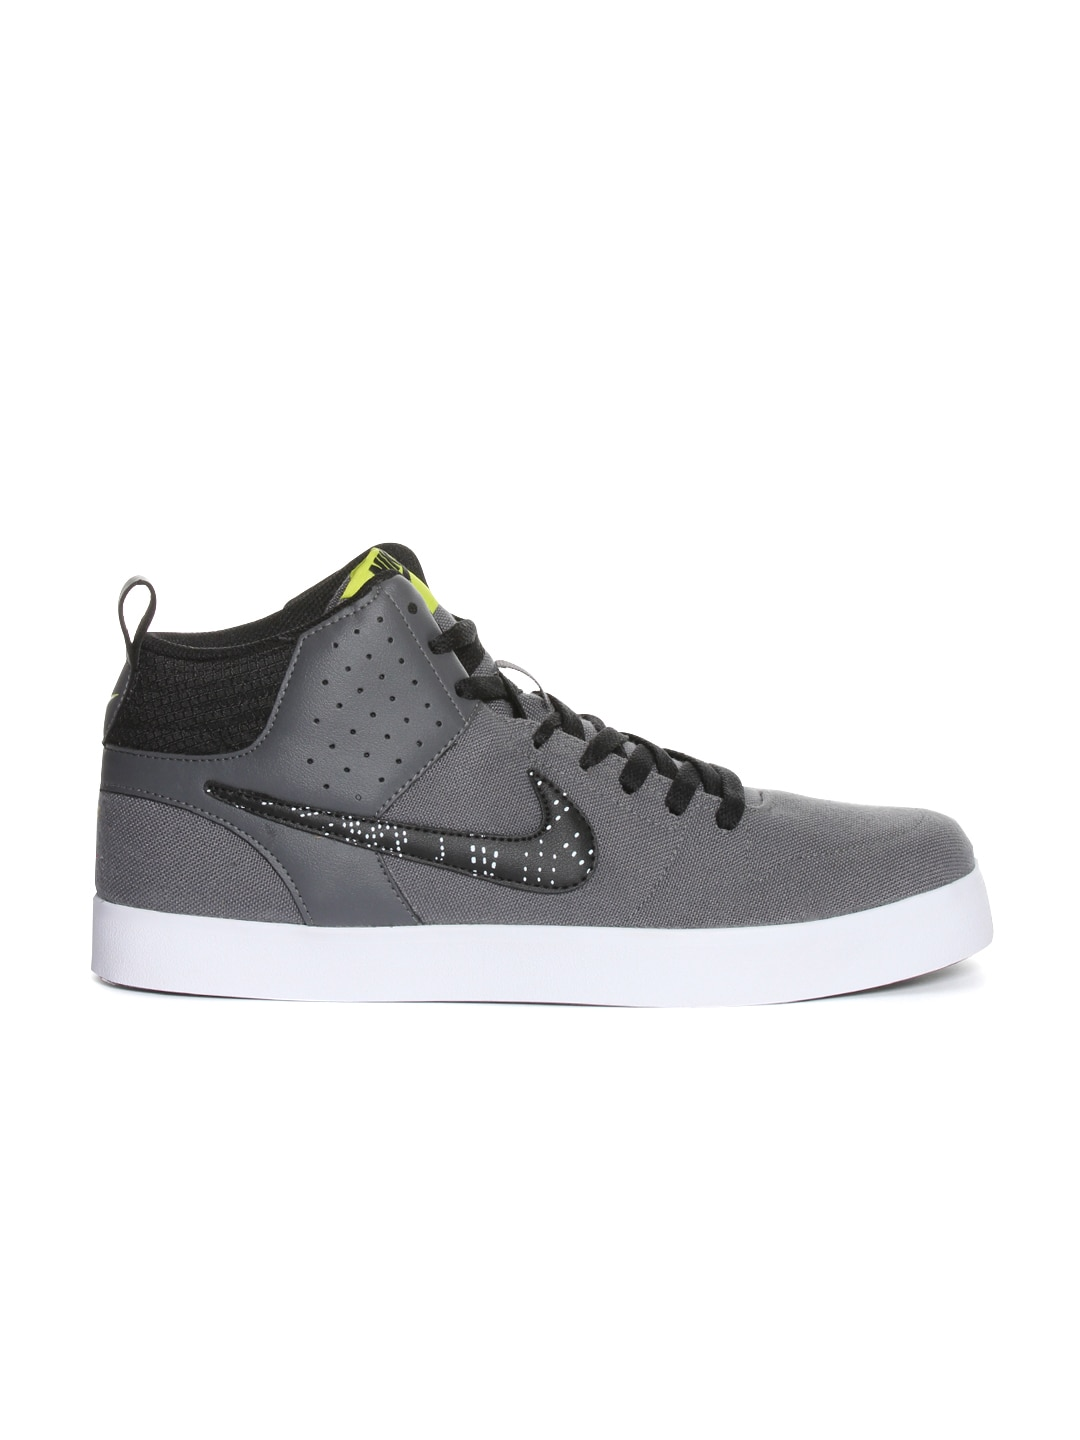 Nike Casual Shoes | Buy Nike Casual Shoes for Men & Women Online in India